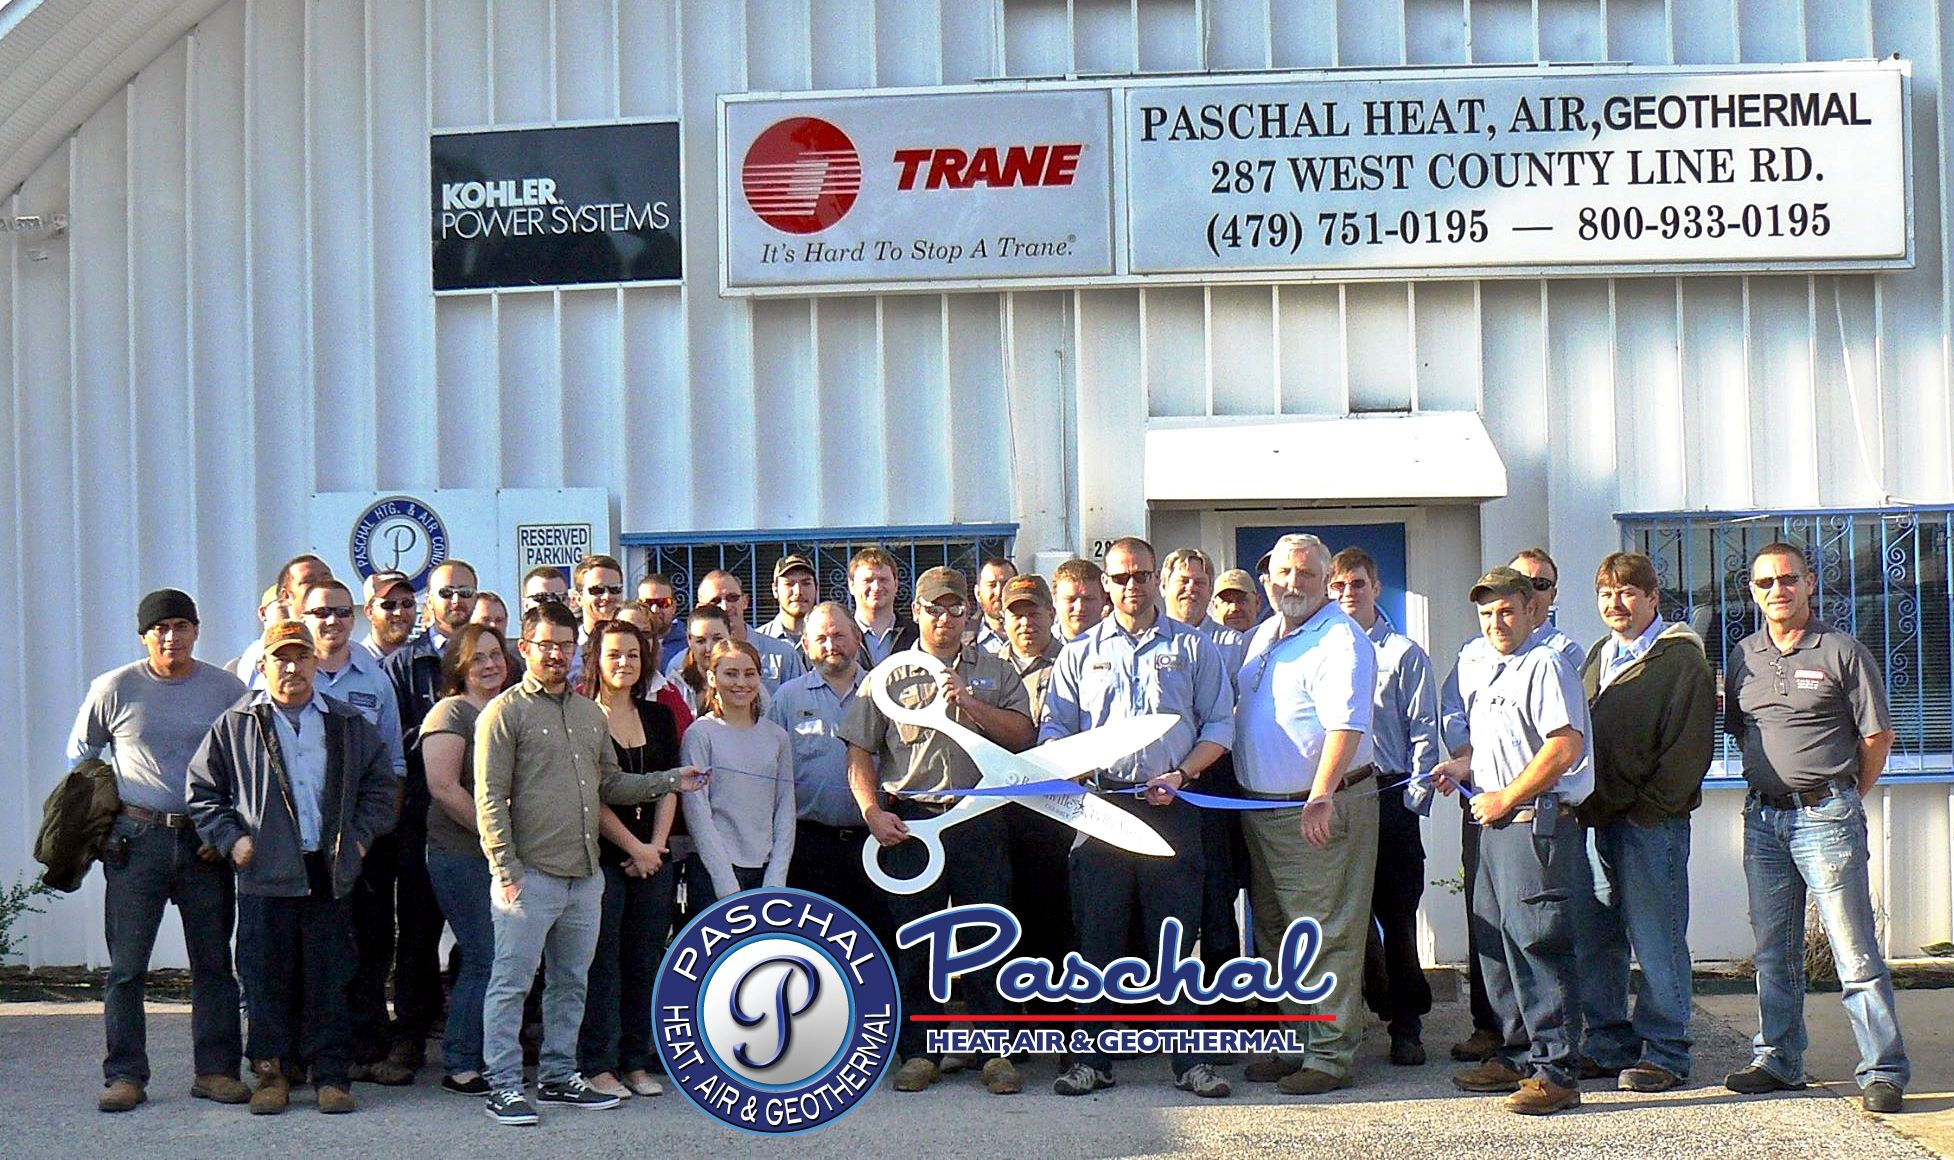 We recently joined the Bentonville/Bella Vista Chamber of